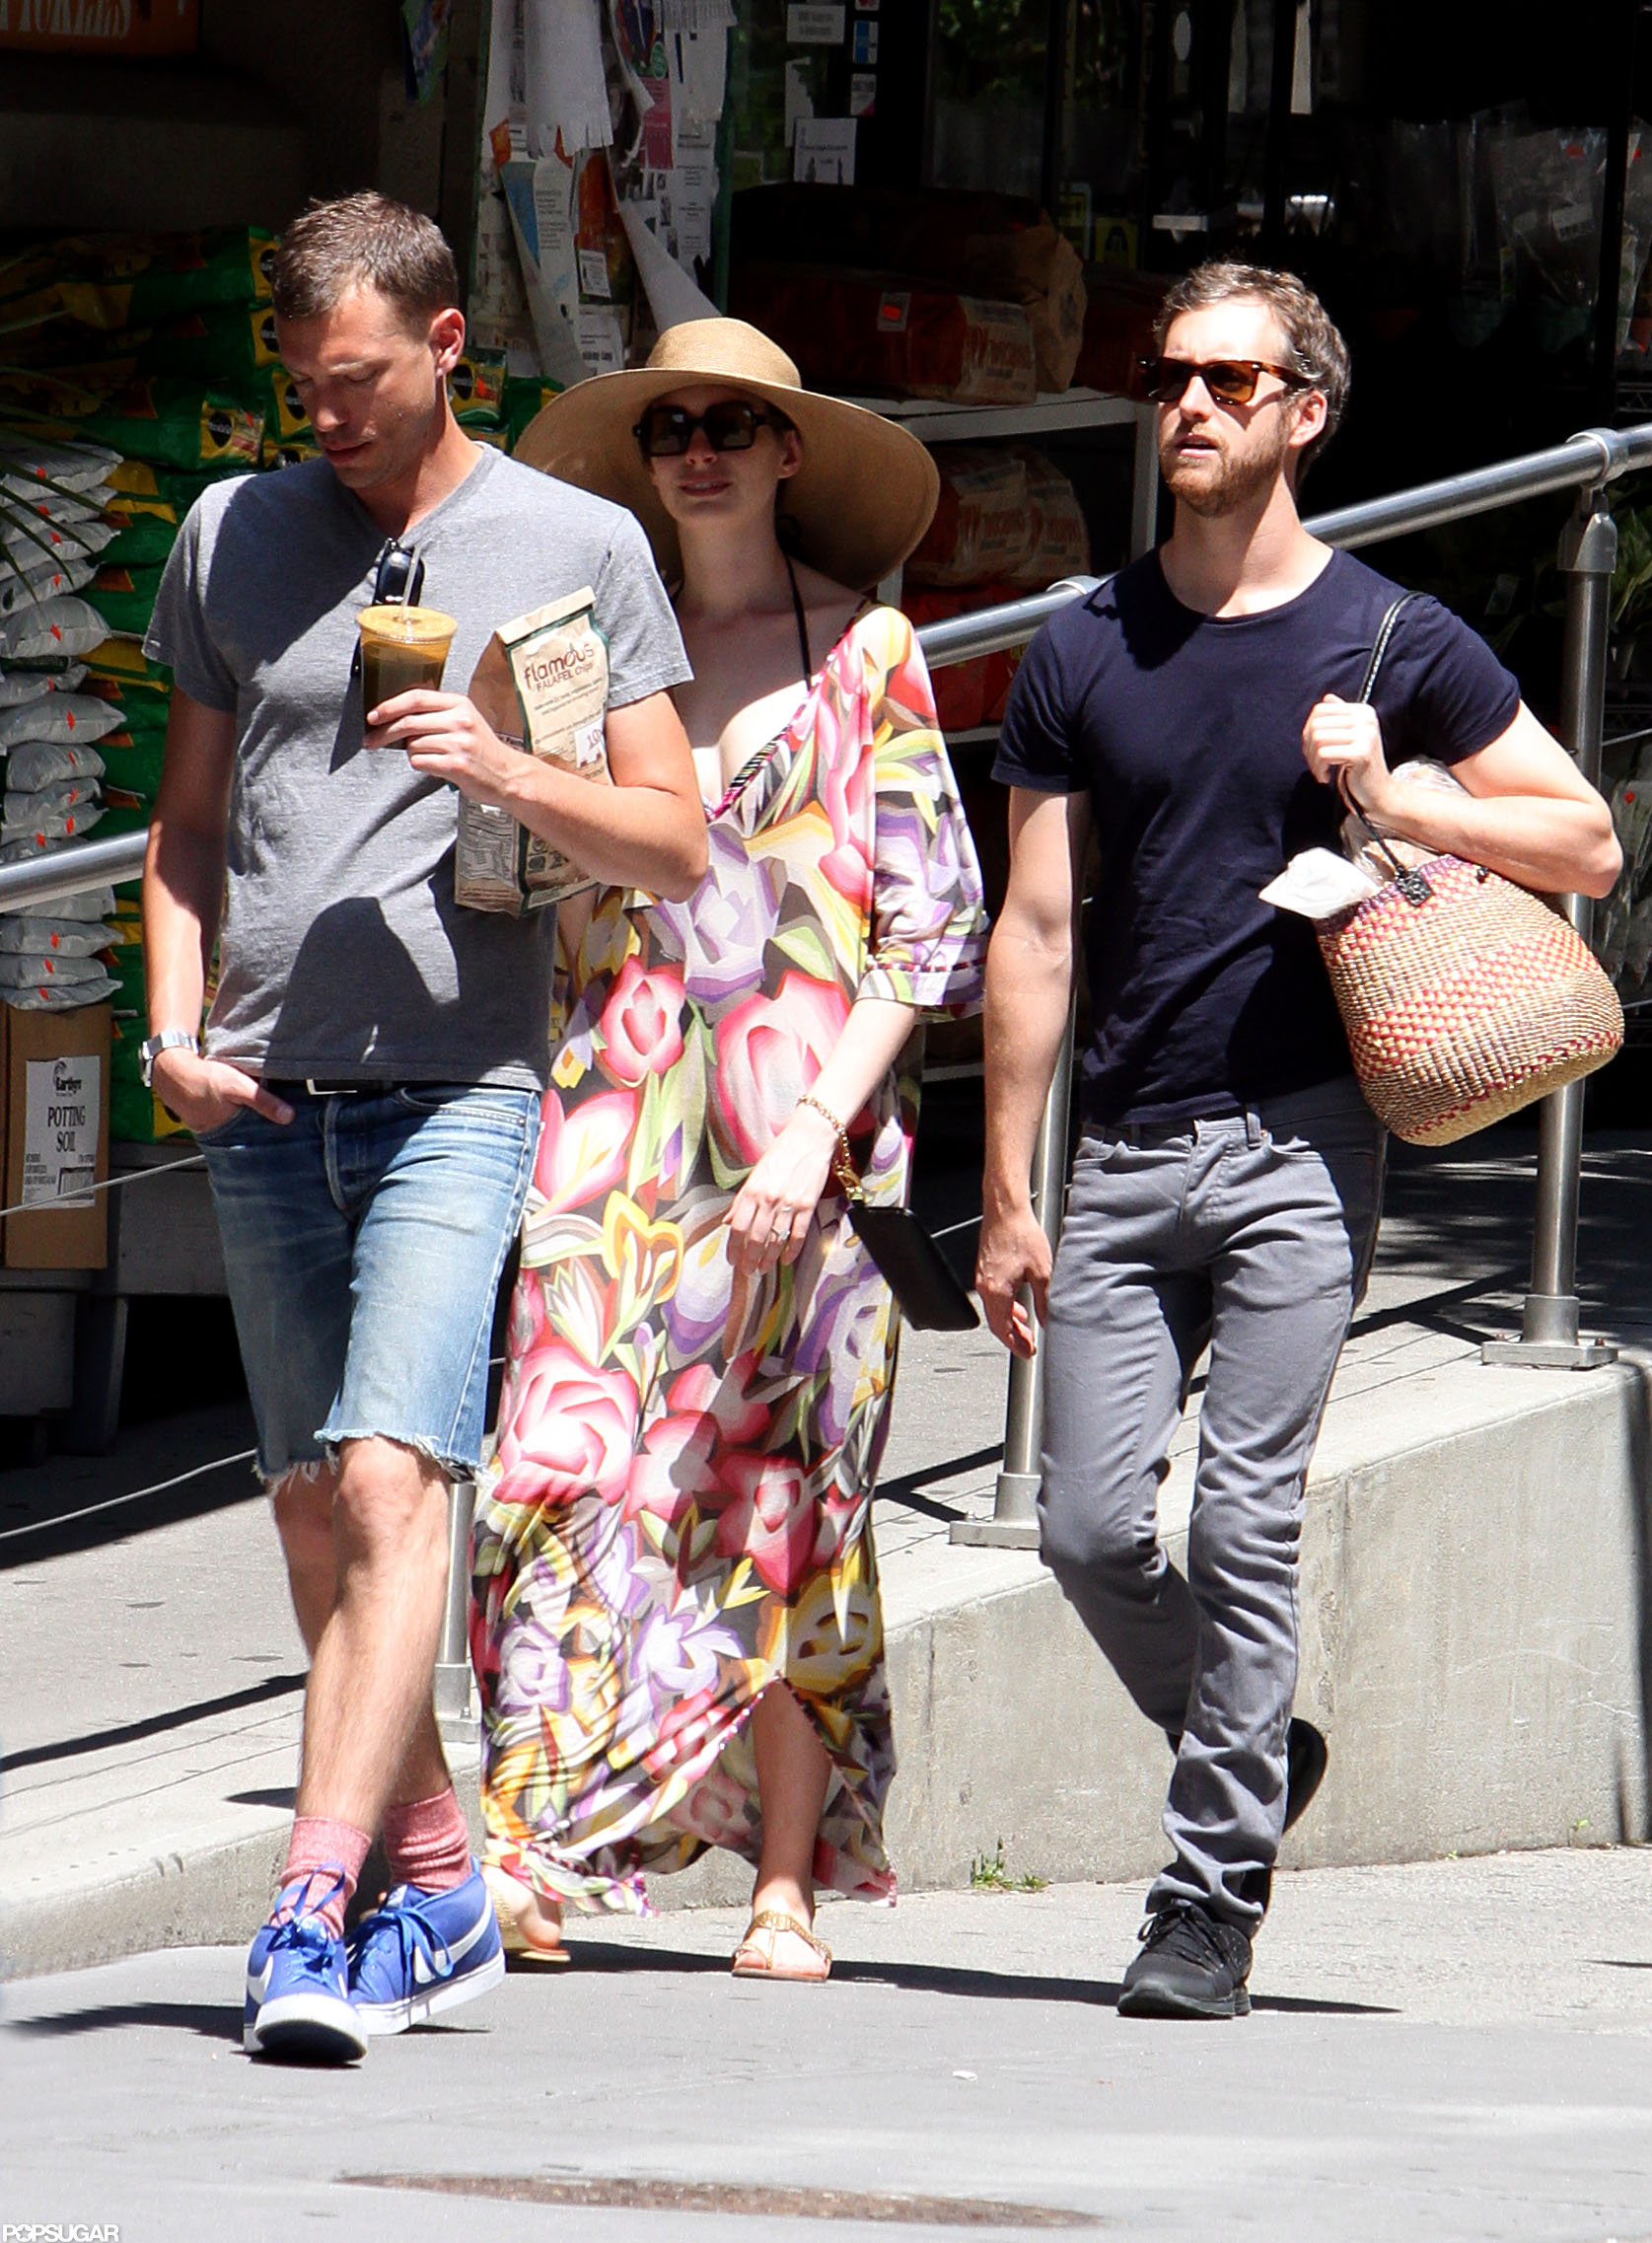 Anne Hathaway spent the holiday with her two main men, her brother Michael Hathaway and her fiancé, Adam Shulman.